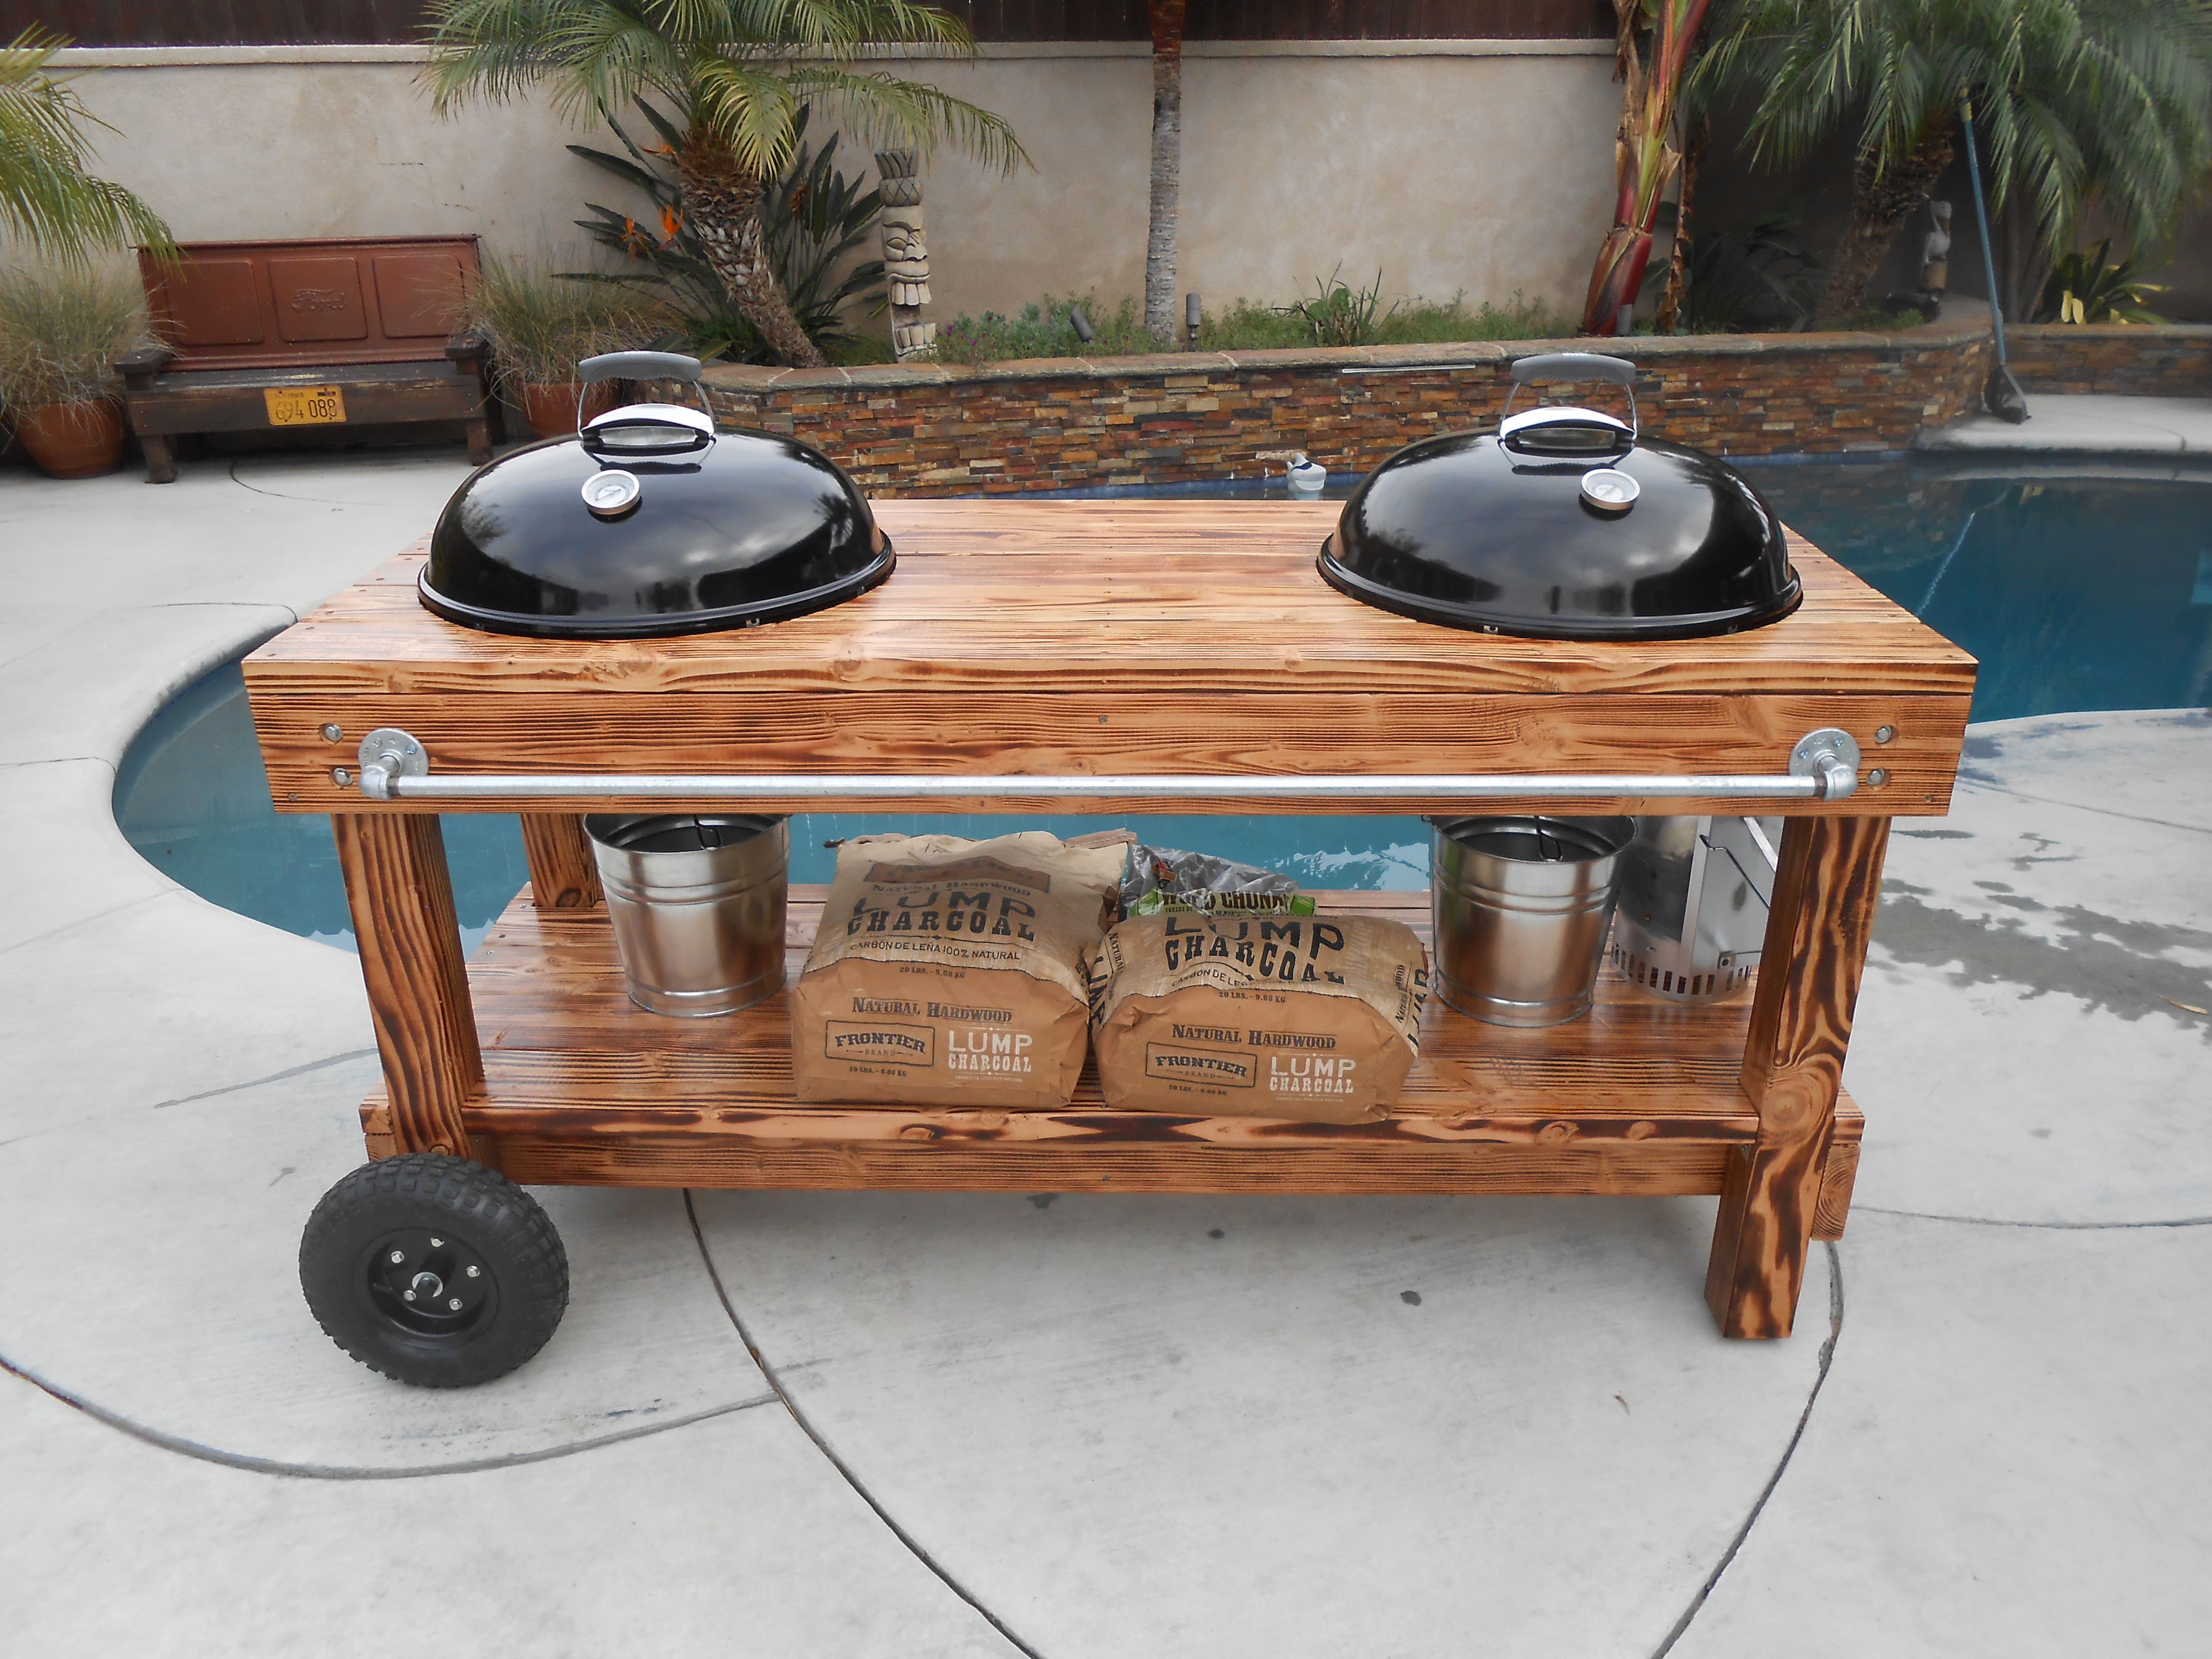 Meuble Barbecue Custom Weber Charcoal Bbq Barbecue Cuisine Exterieur